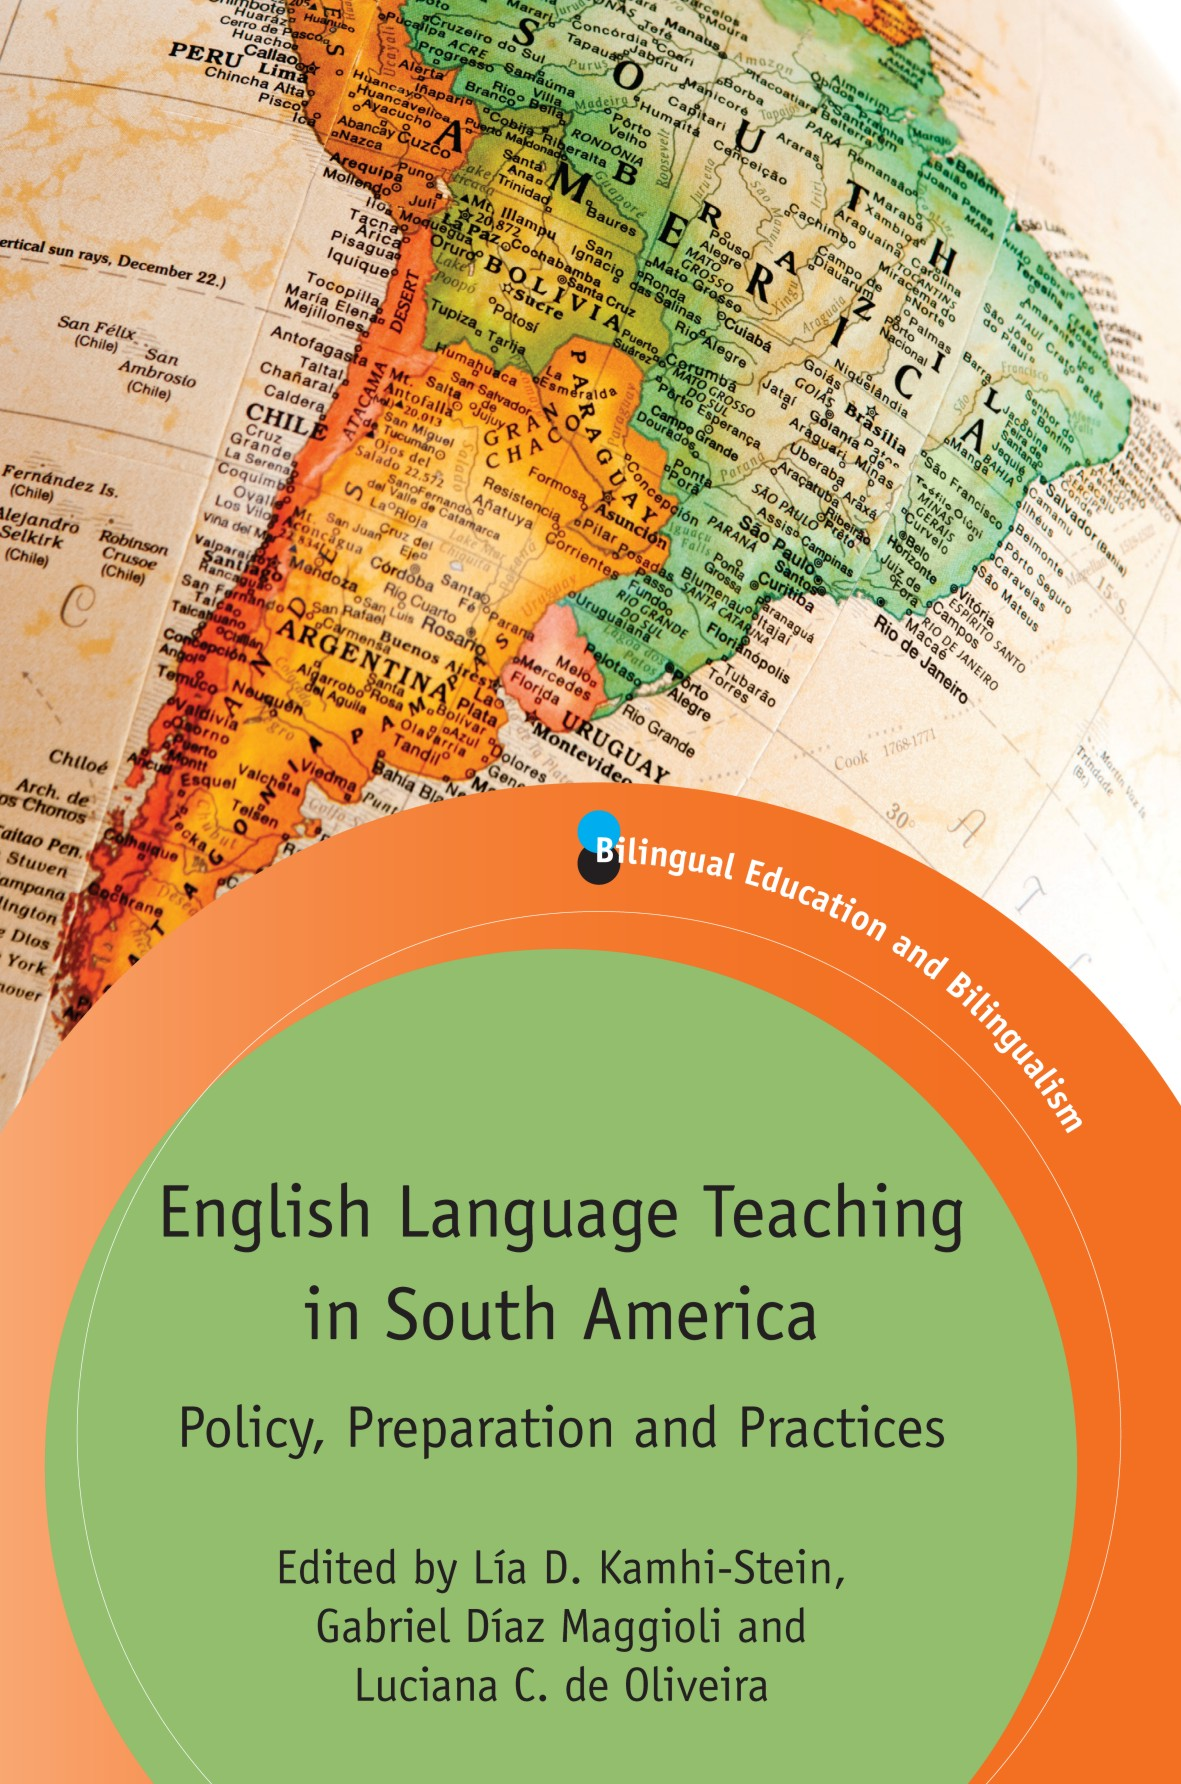 Bilingual Education Channel View Publications And Multilingual - Japan bilingual map 3rd edition